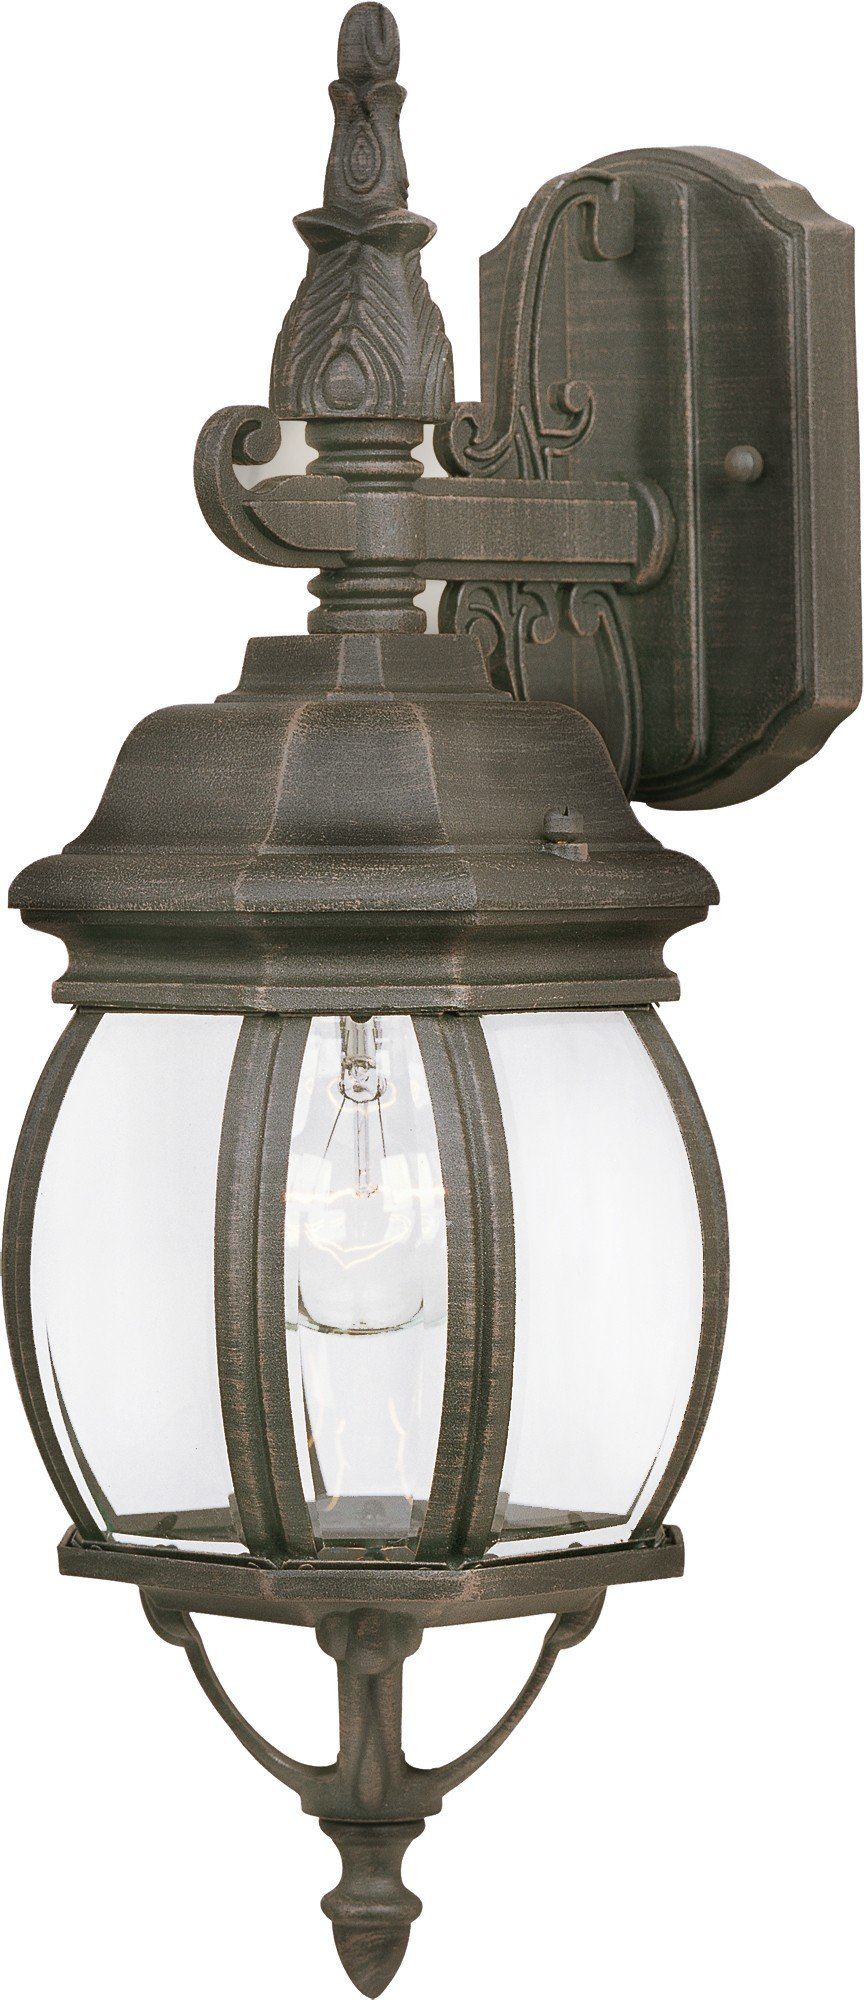 Maxim 1030RP Crown Hill 1-Light Outdoor Wall Lantern, Rust Patina Finish, Clear Glass, MB Incandescent Incandescent Bulb , 60W Max., Dry Safety Rating, Standard Dimmable, Glass Shade Material, 10080 Rated Lumens